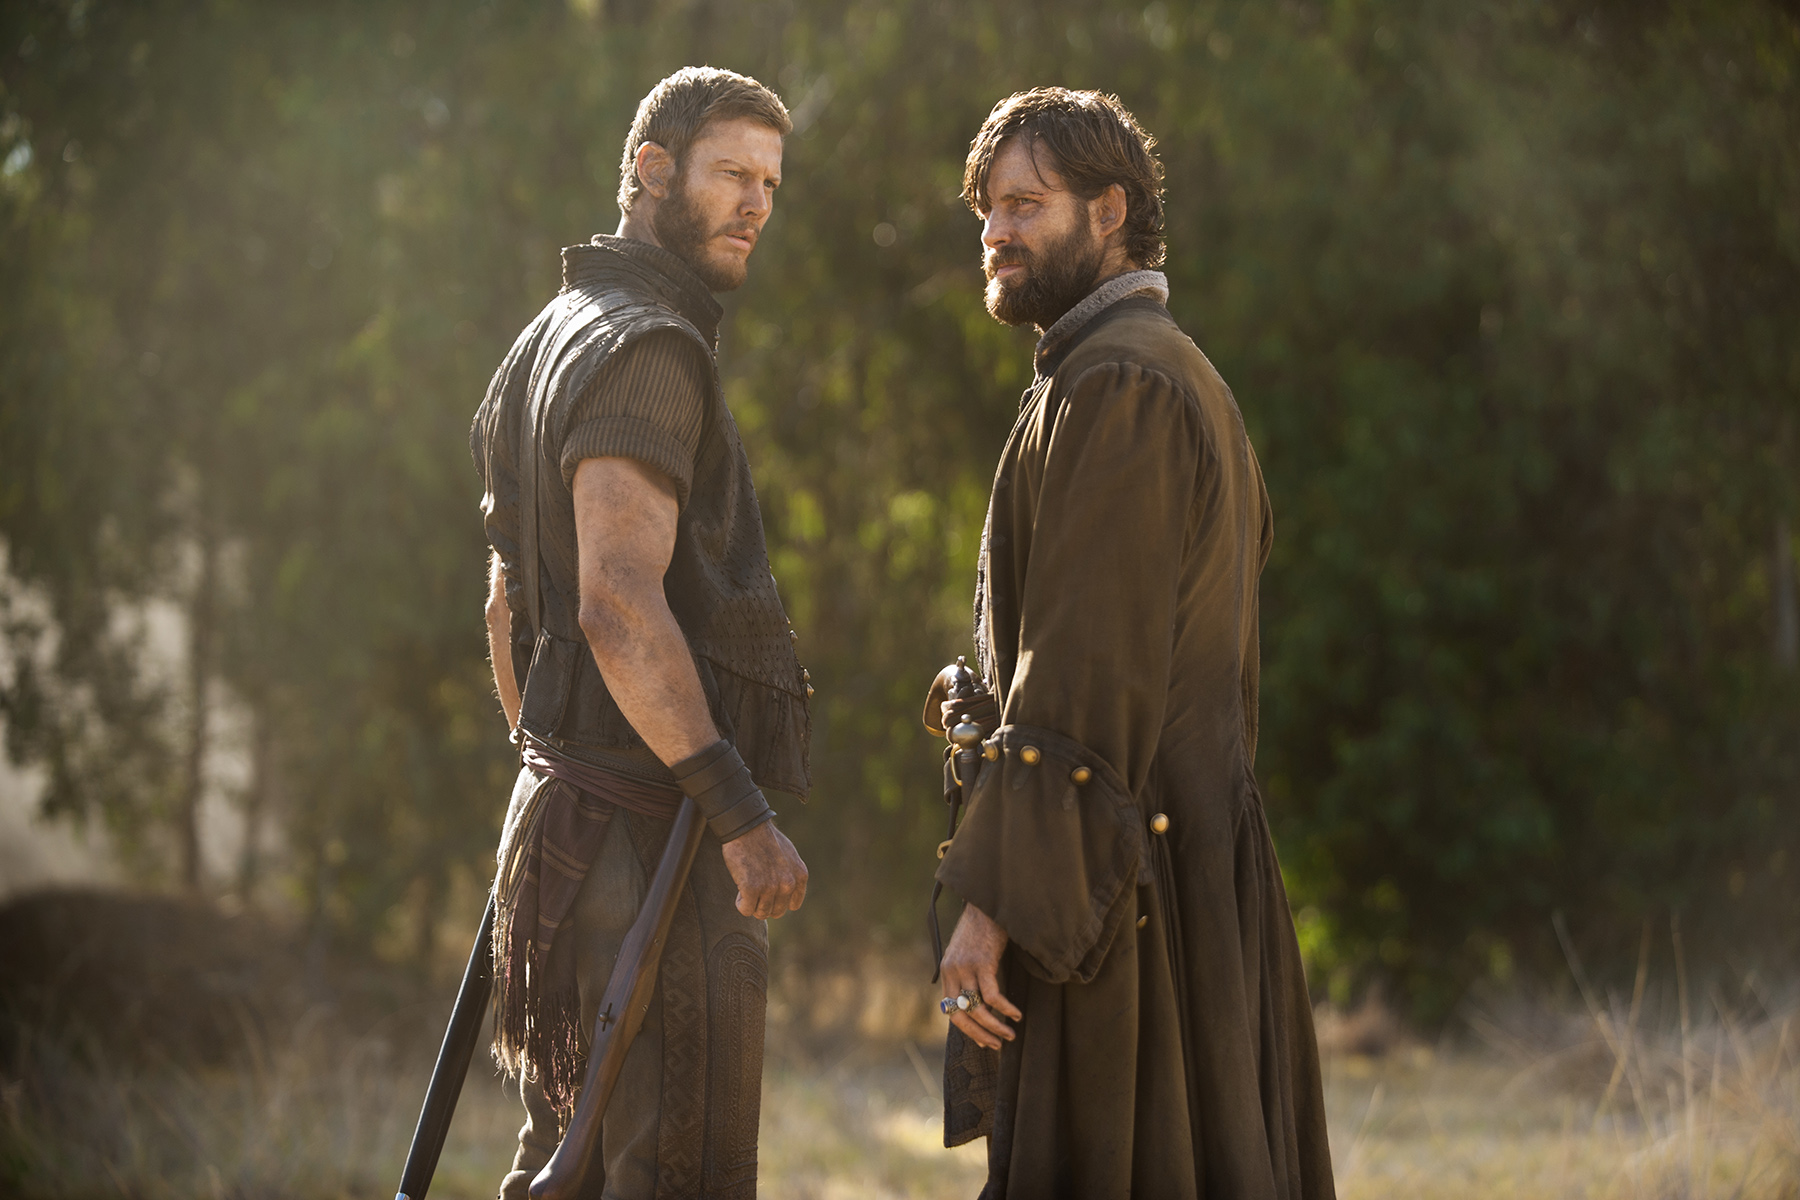 Tom Hopper and Aidan Whytock in Black Sails (2014)